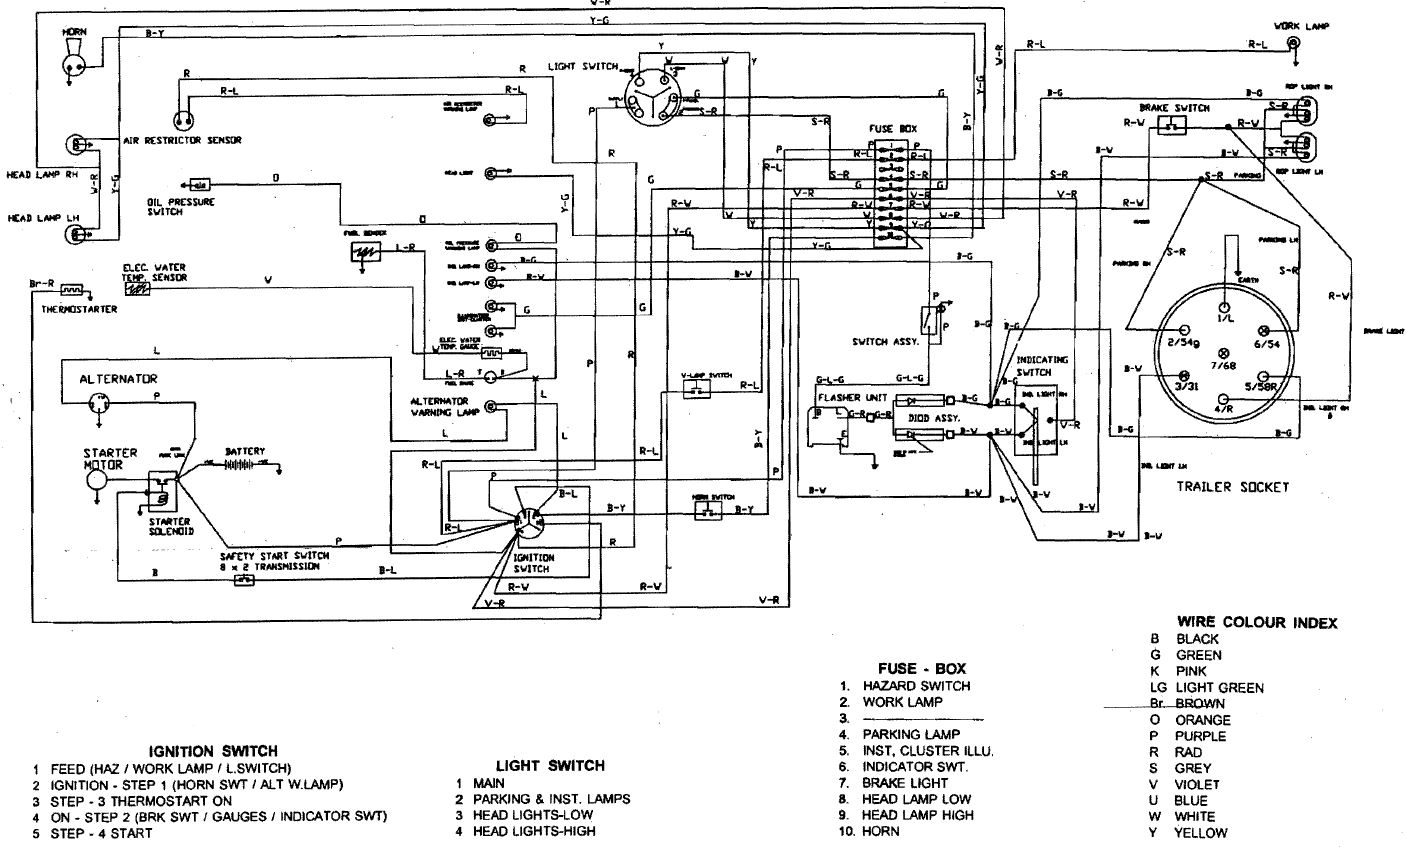 20158463319_b82d524c3d_o ignition switch wiring diagram  at creativeand.co